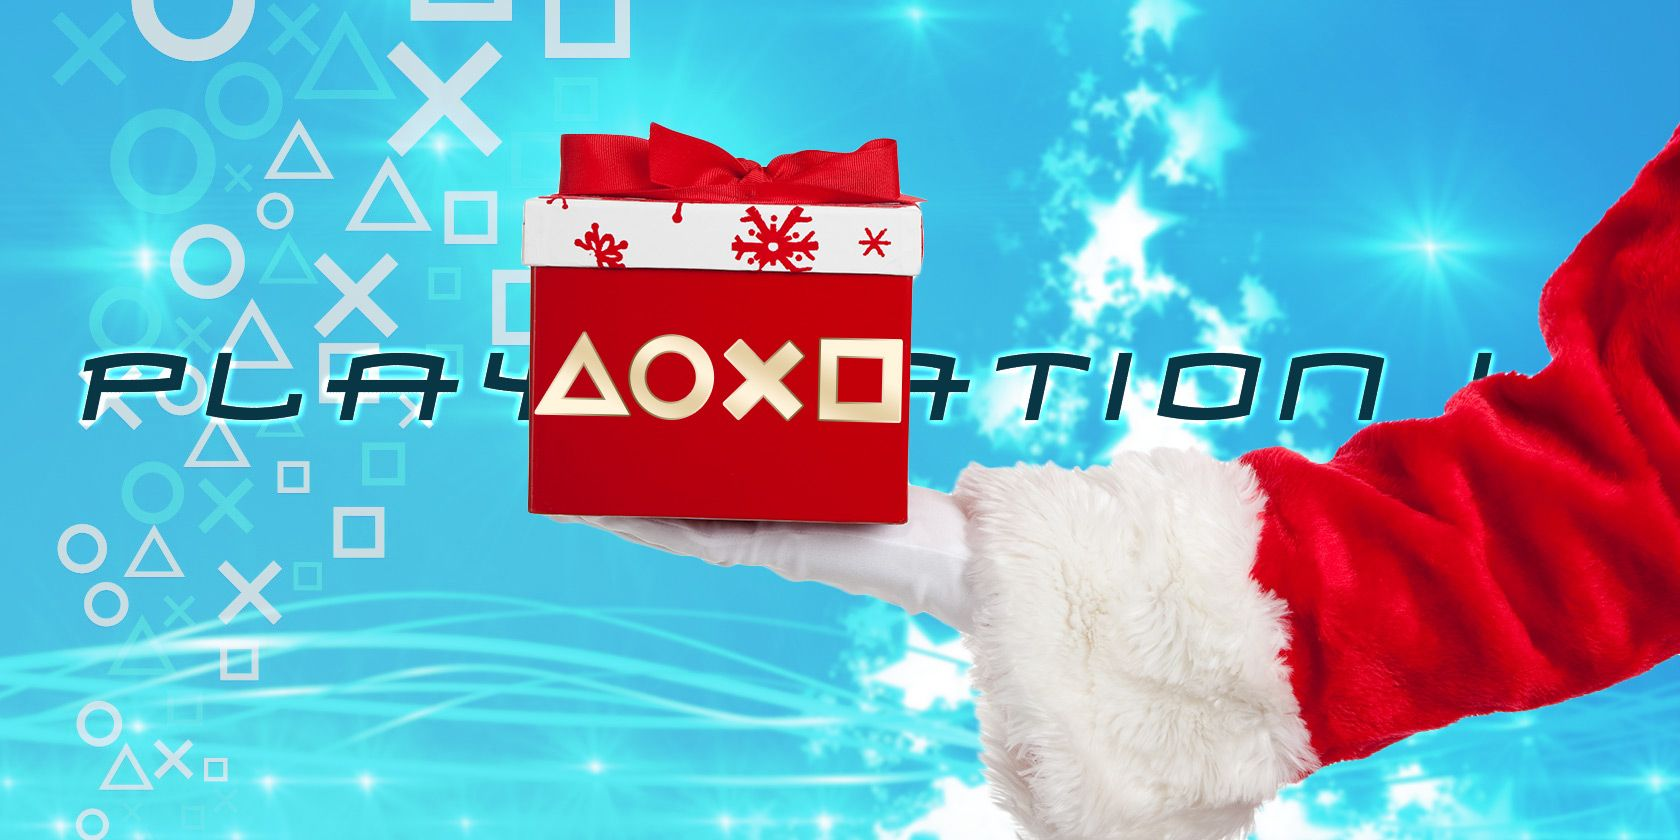 ps4-gifts